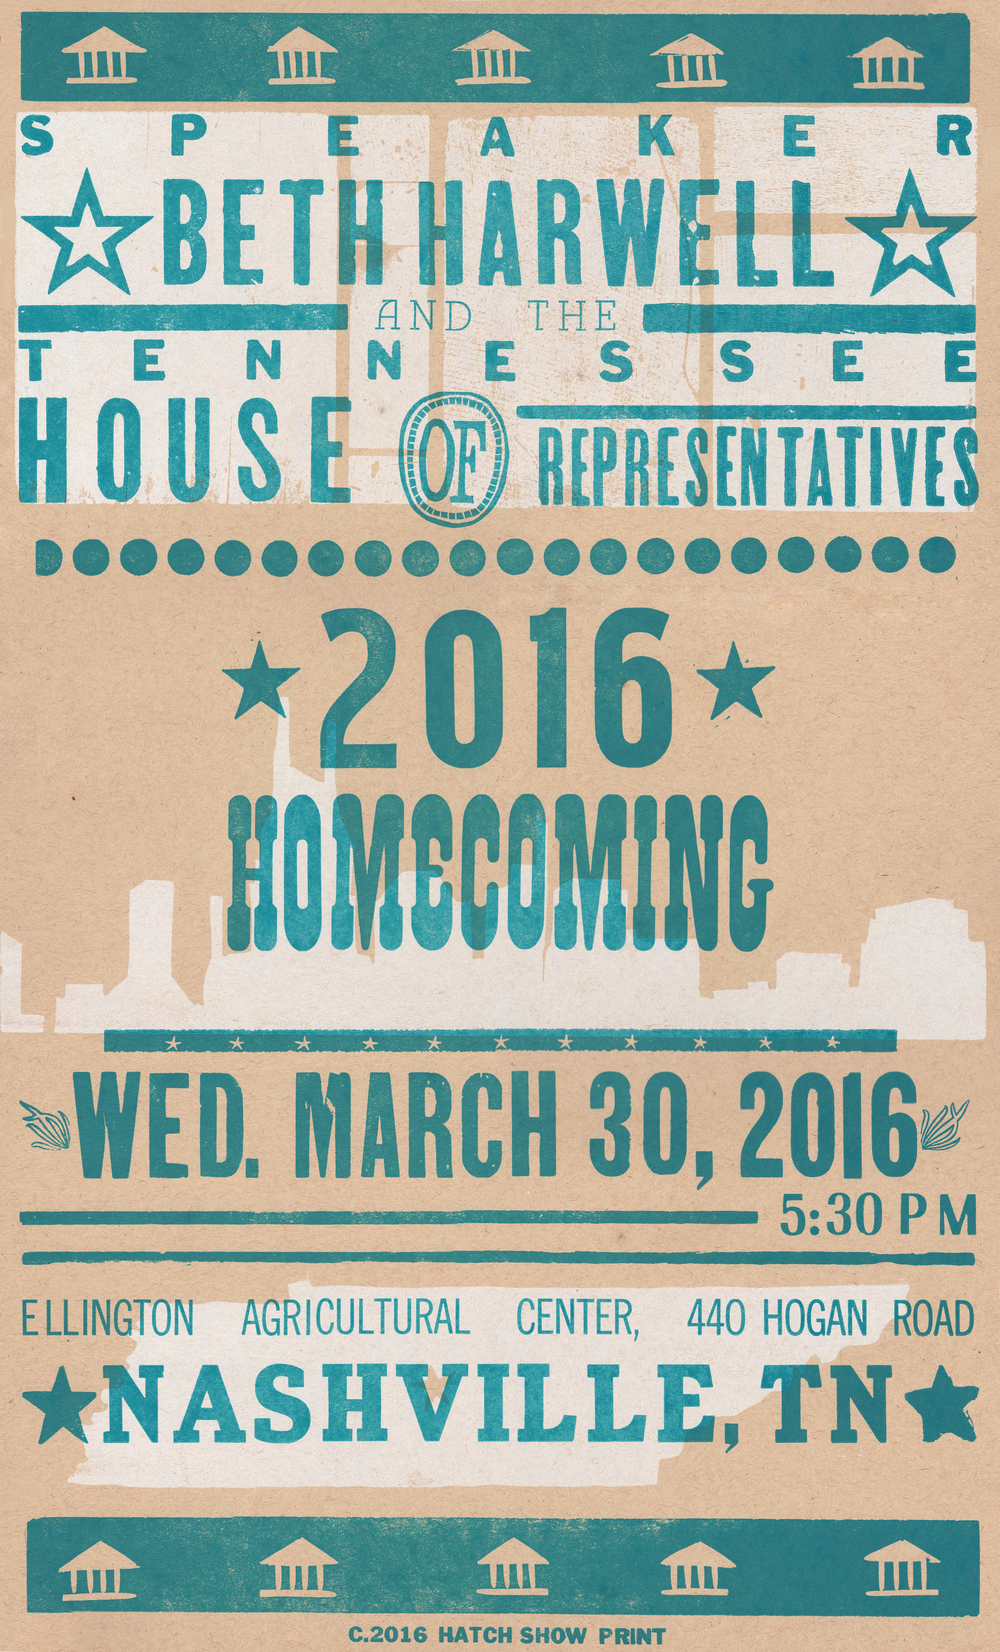 Tennessee House of Representatives Homecoming Poster